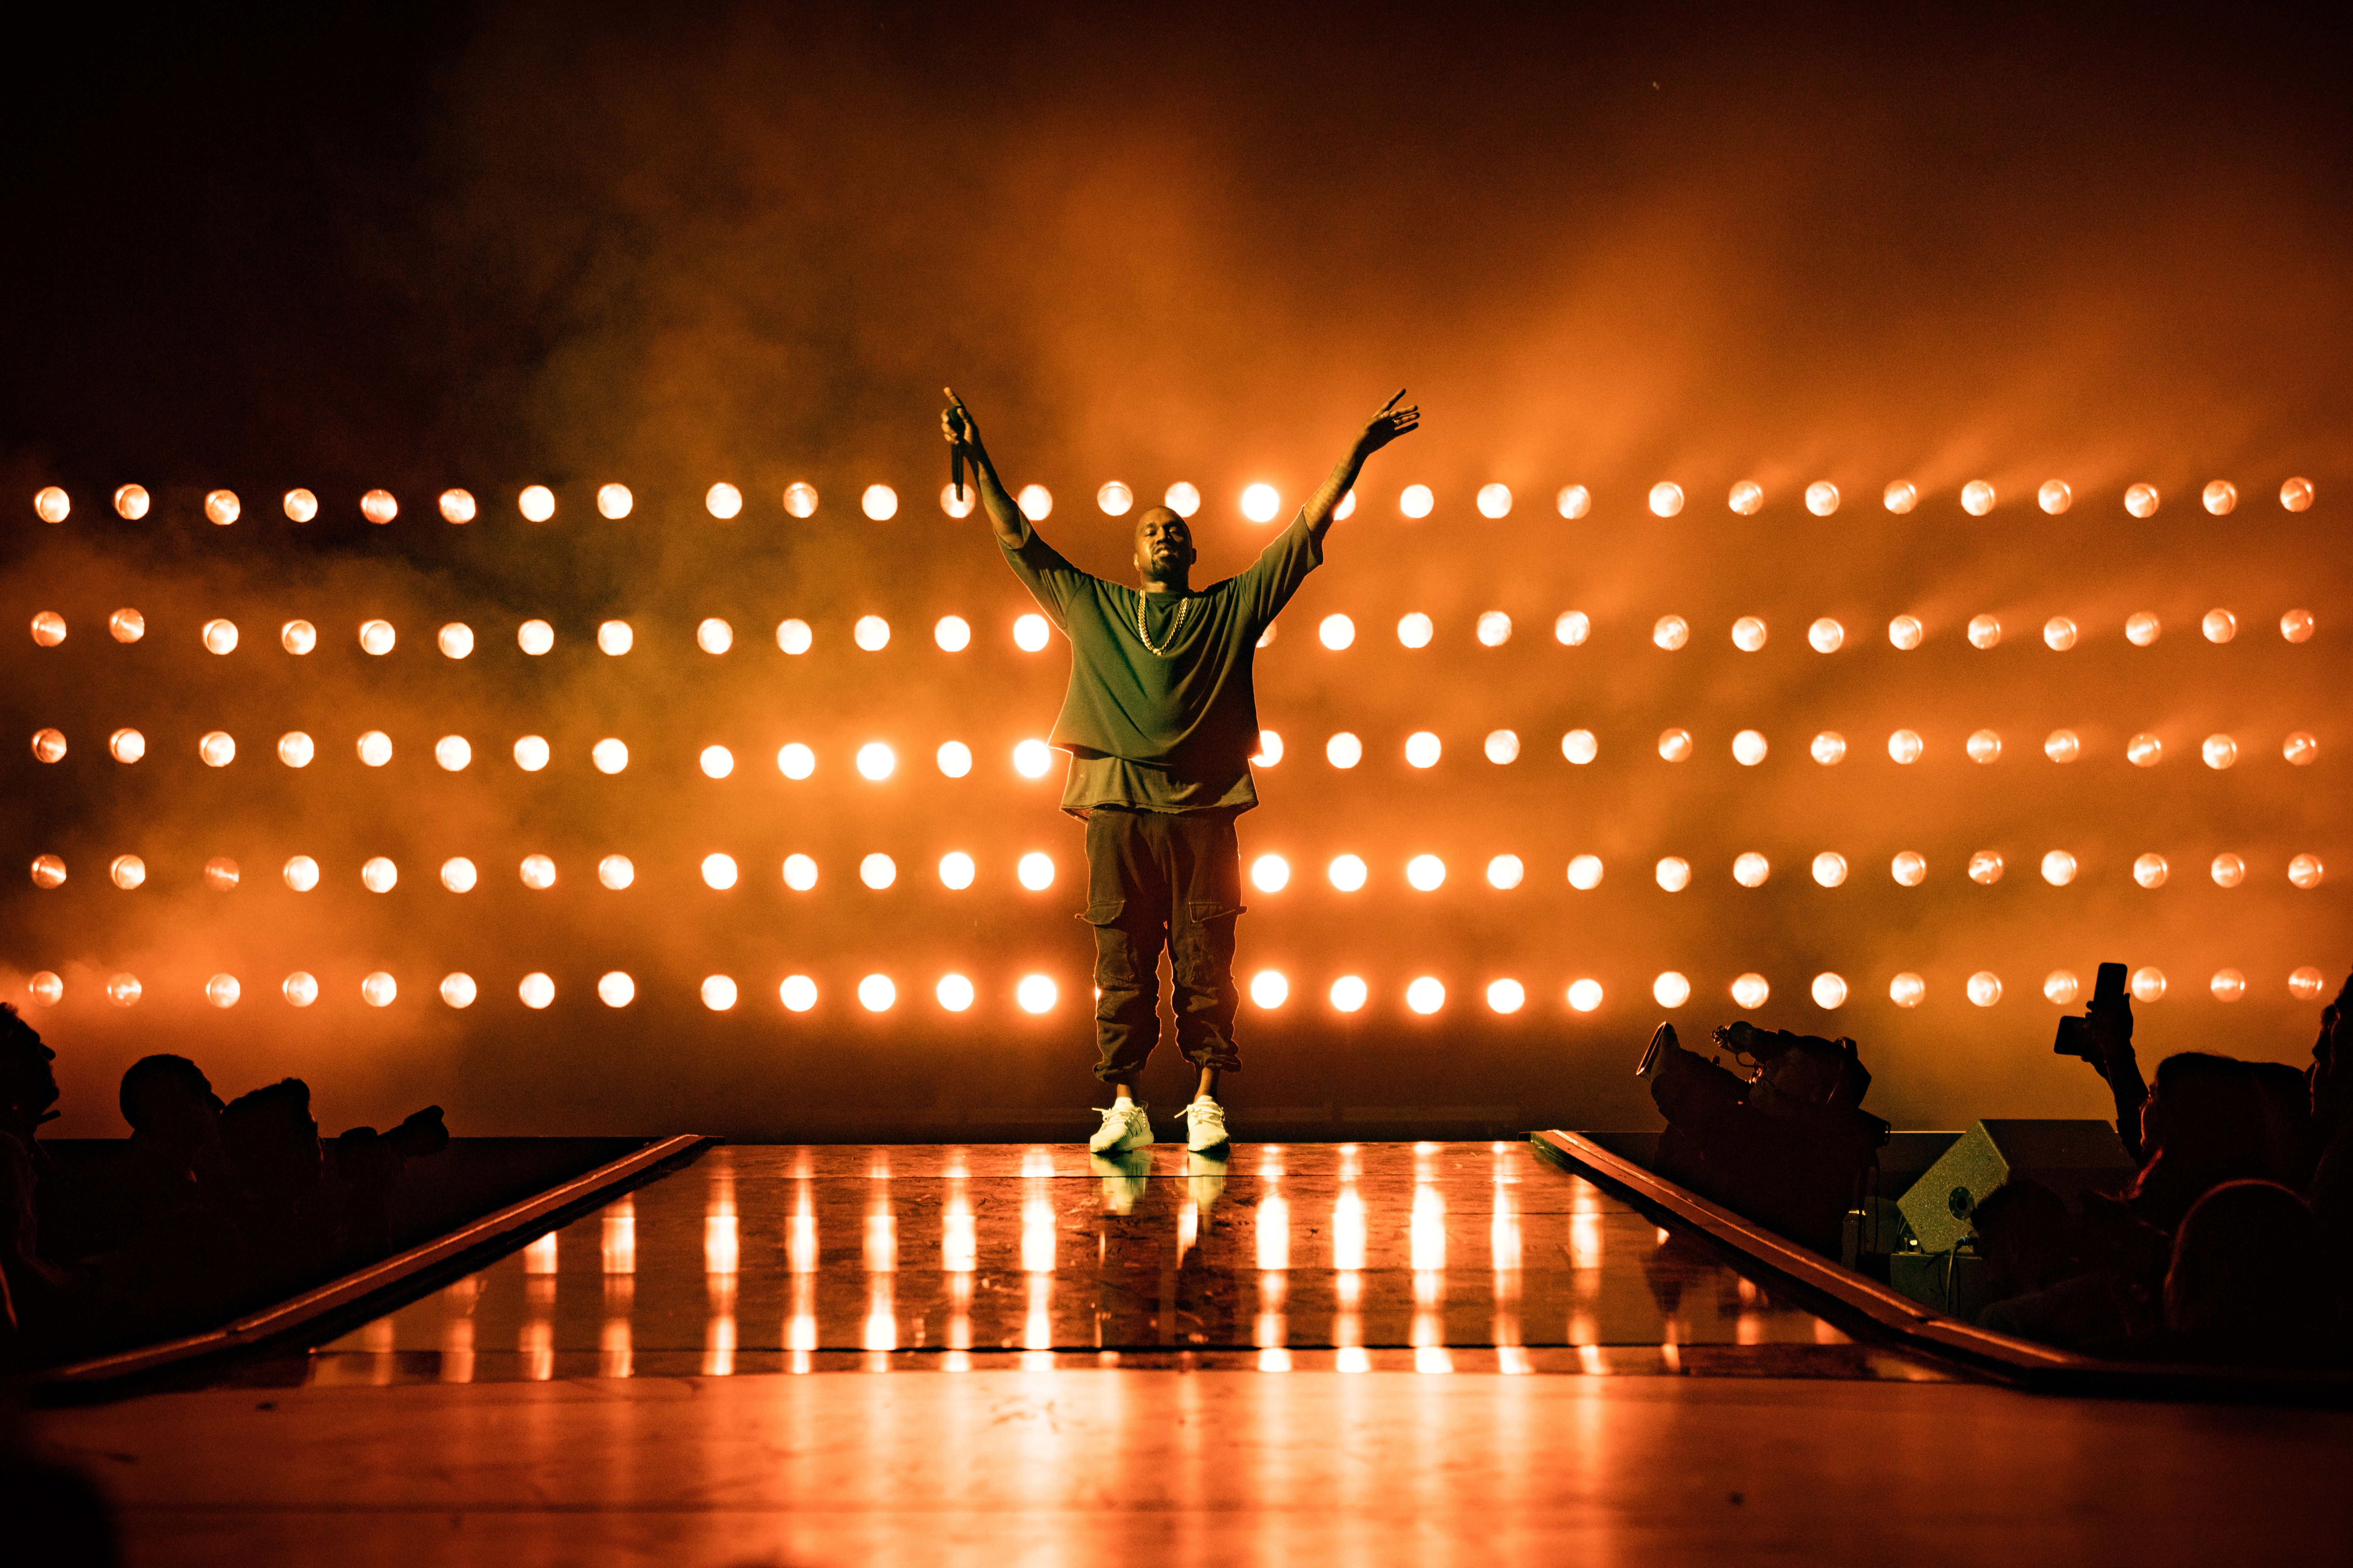 Kanye West performs onstage at the 2015 iHeartRadio Music Festival at MGM Grand Garden Arena on September 18, 2015 in Las Vegas, Nevada.